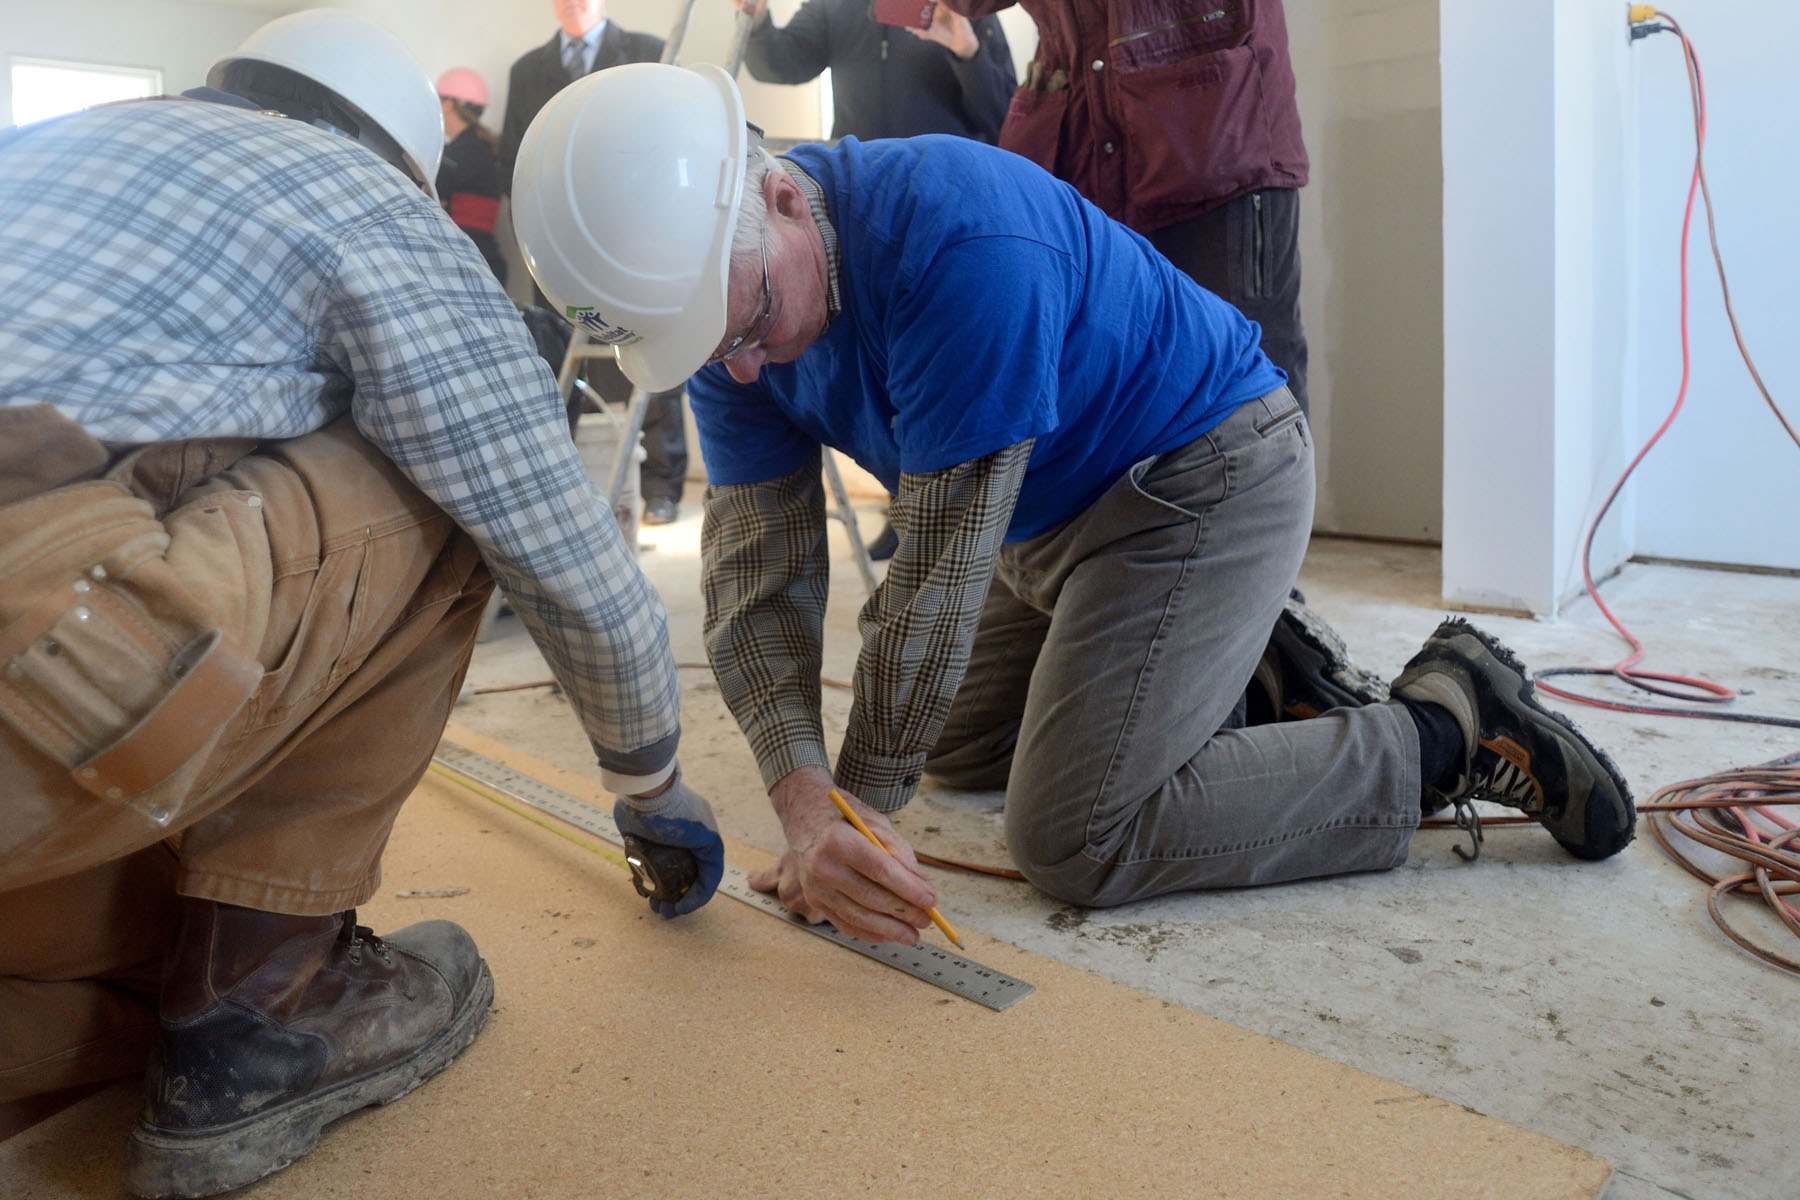 His Excellency wasted no time in picking up tools and working alongside Habitat for Humanity volunteers.